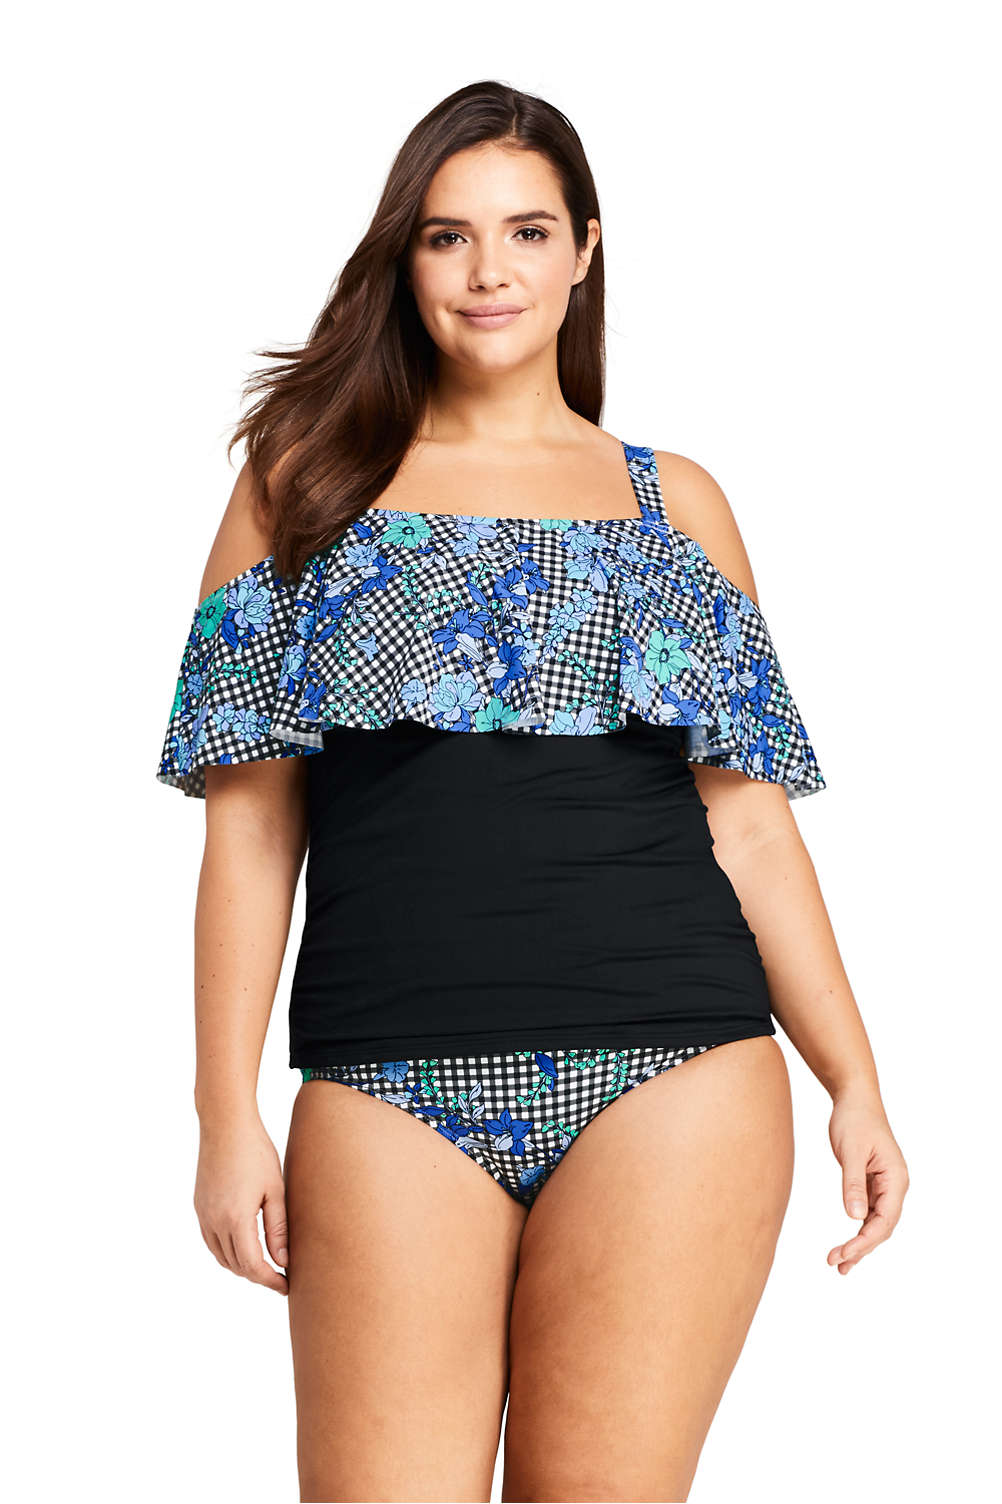 2b5af0ca0d5bd Women's Plus Size Off-the-Shoulder Tankini Top Swimsuit Print from Lands'  End